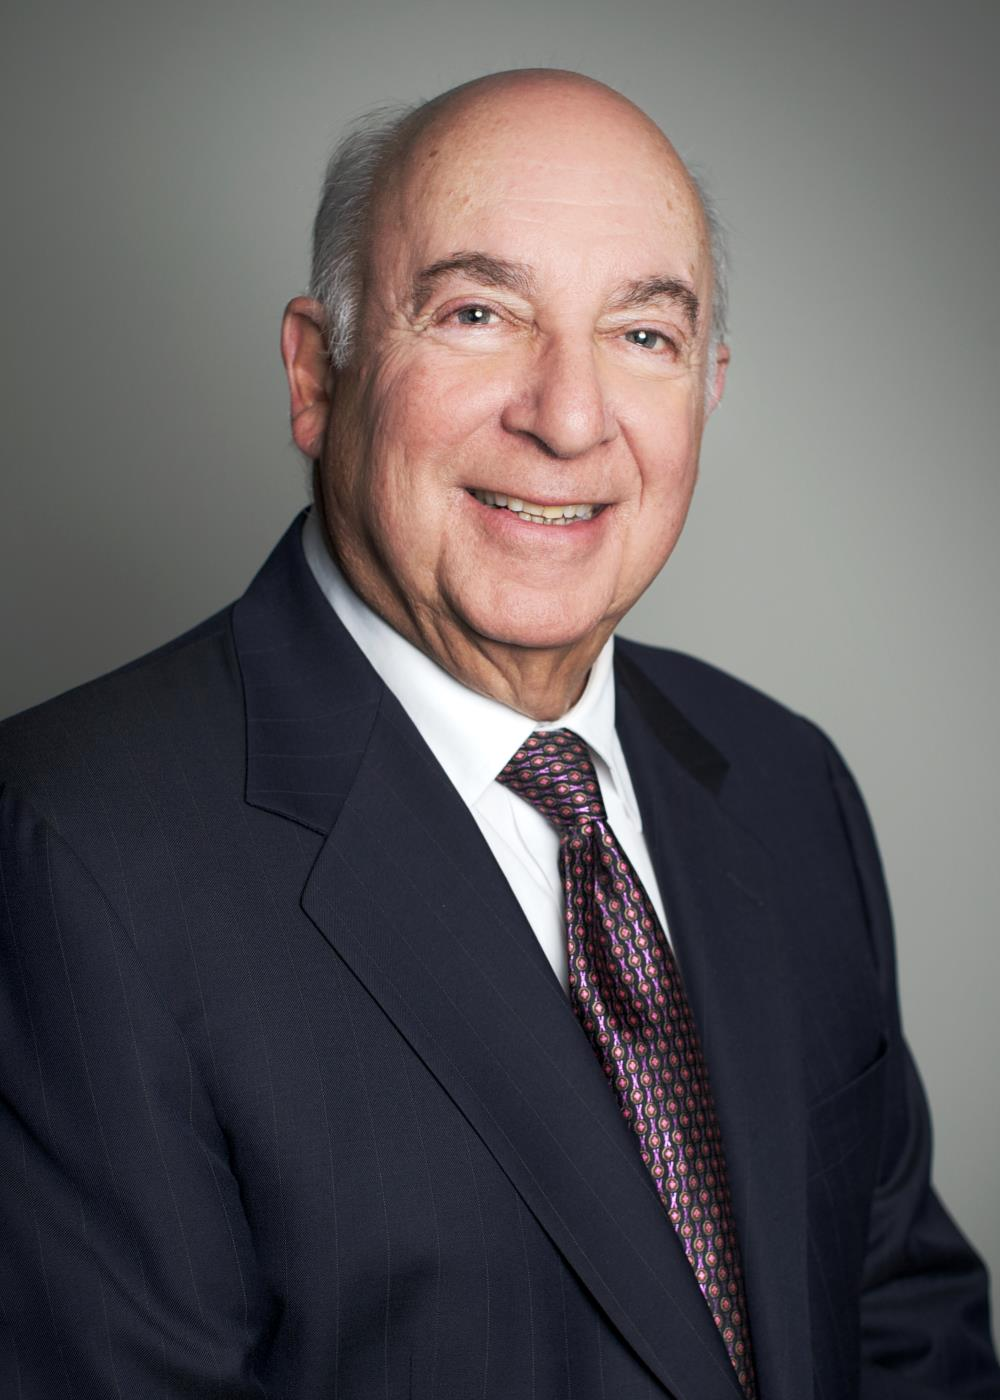 Richard Silverman - Chairman